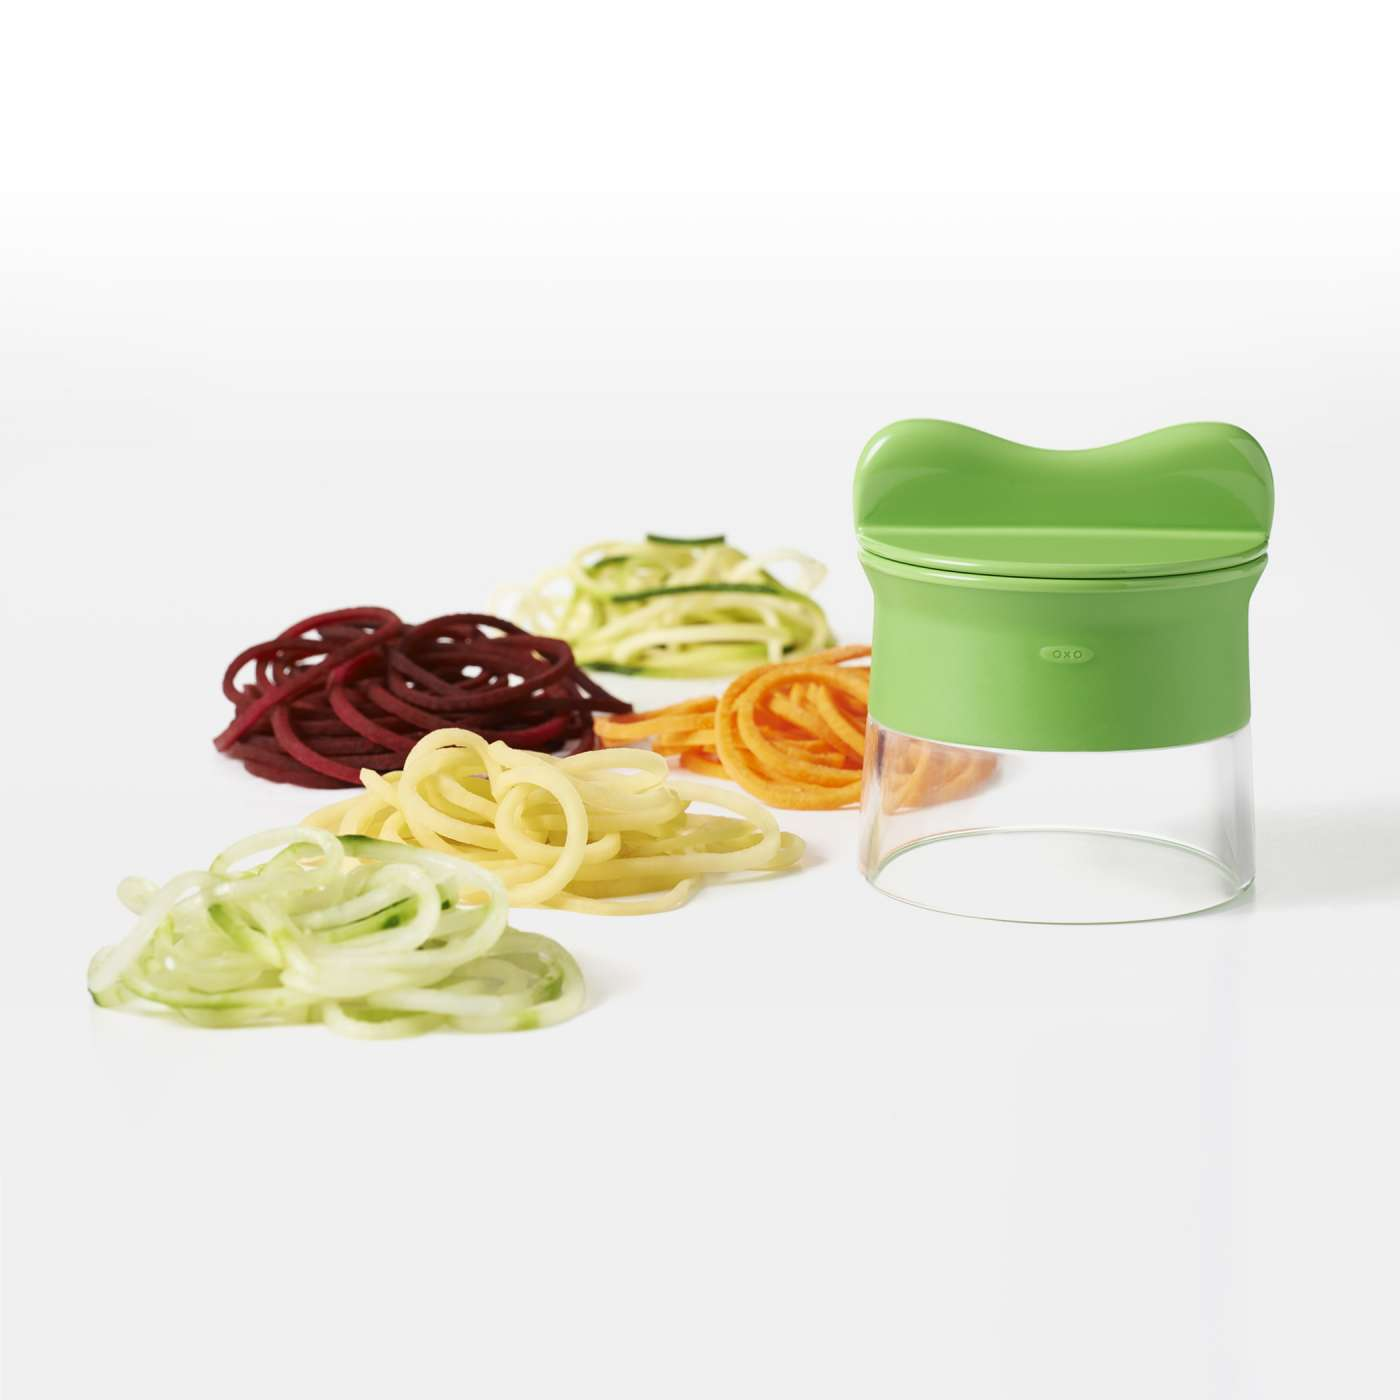 OXO Good Grips - Hand-Held Spiraliser image